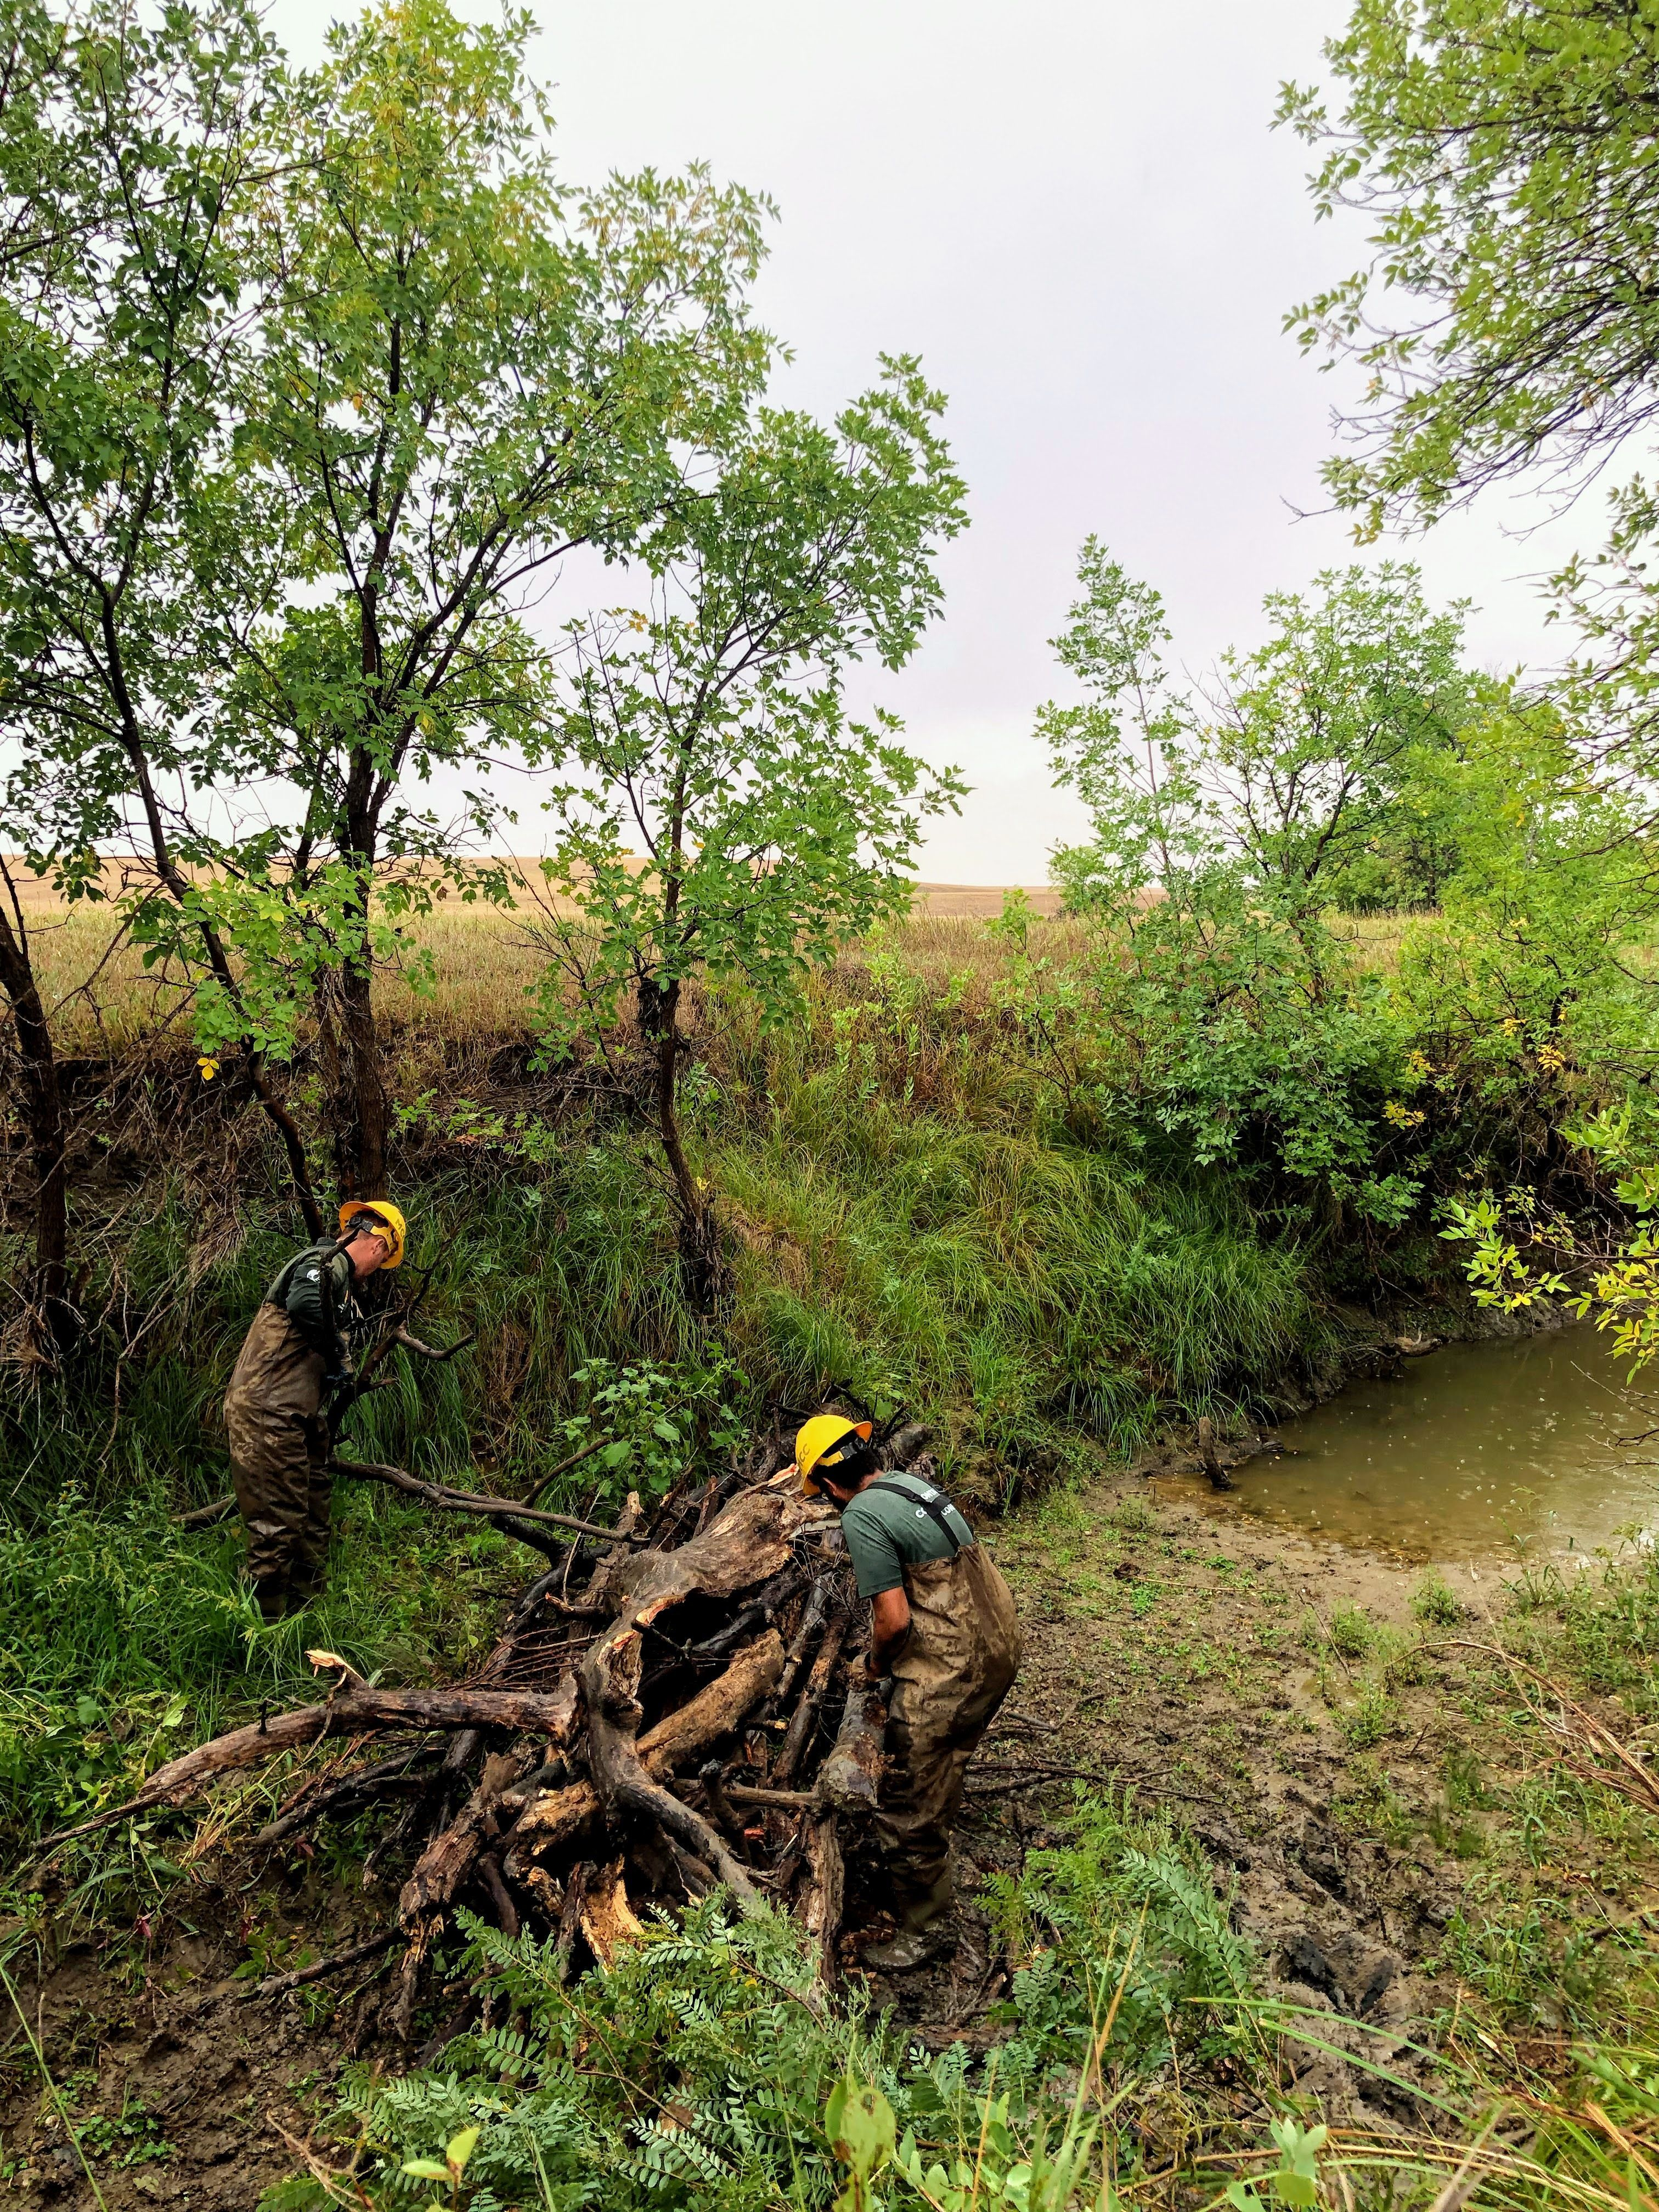 A crew drags a large log towards a stream